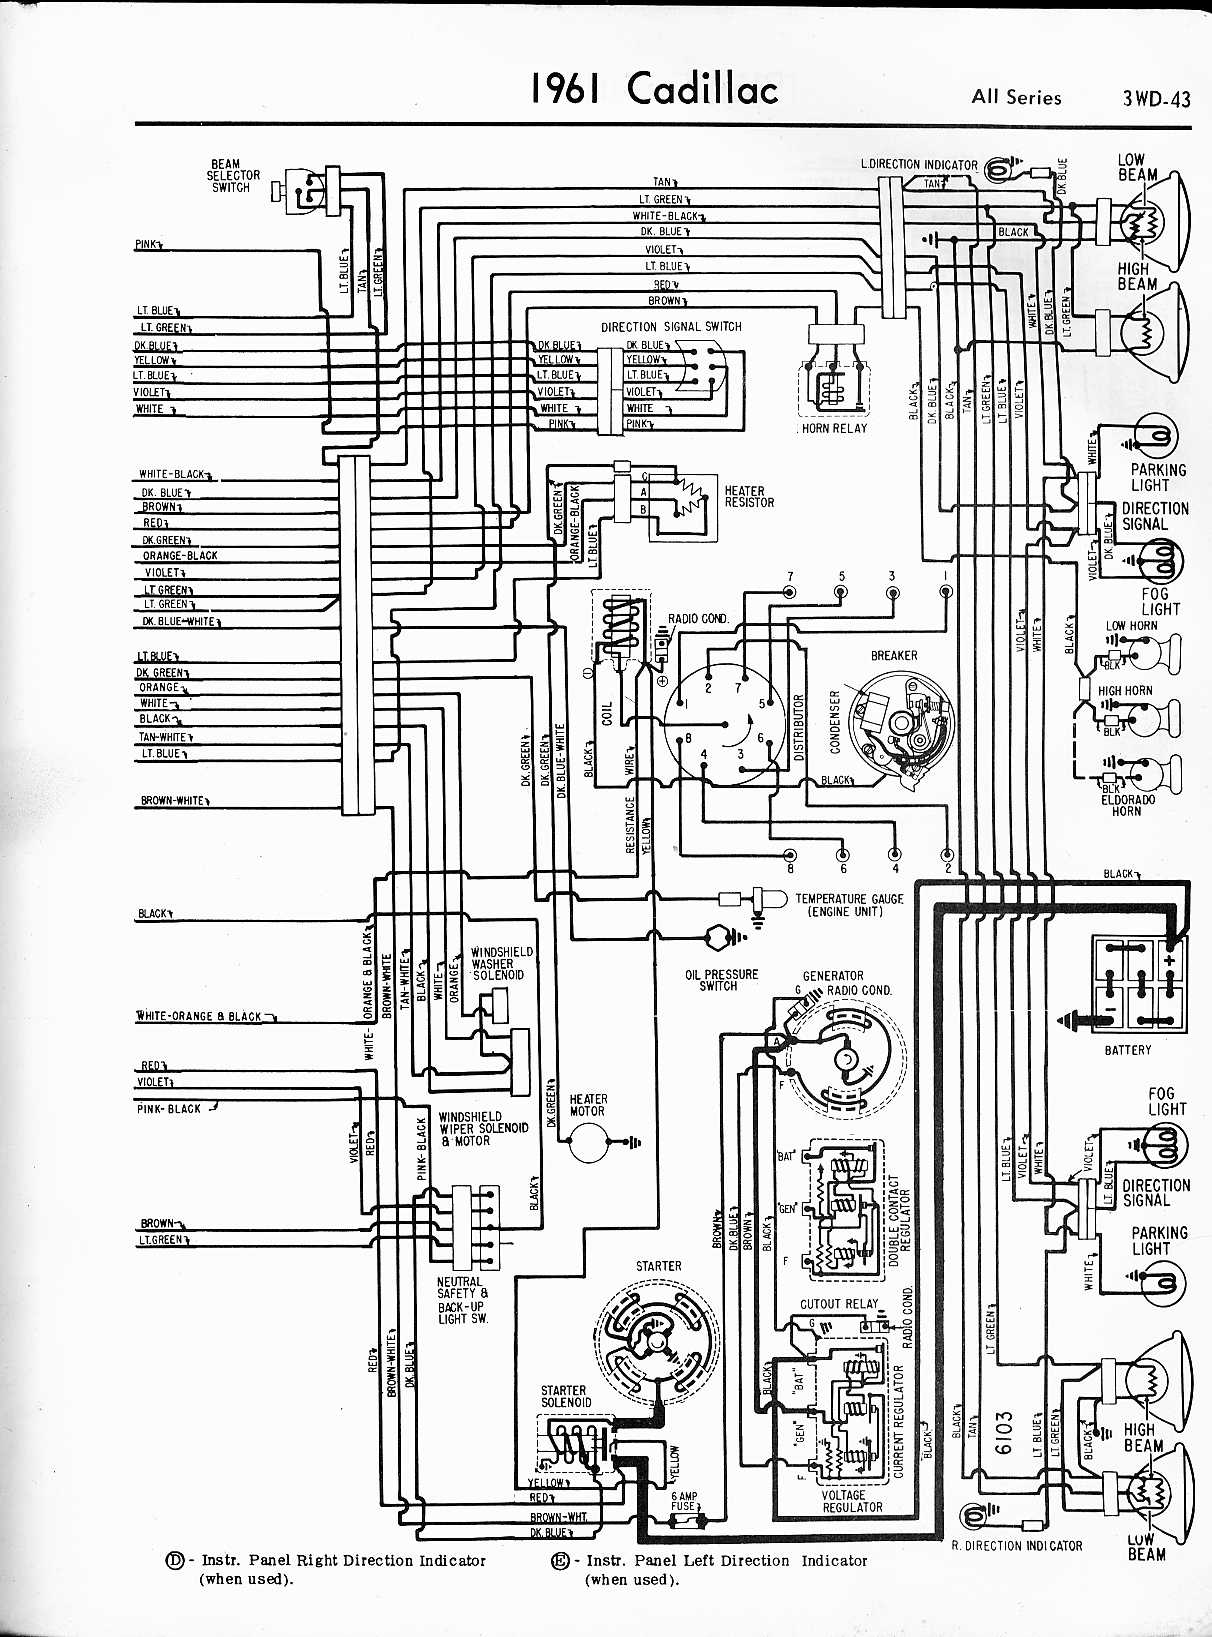 1960 Cadillac Wiring Diagram from www.oldcarmanualproject.com